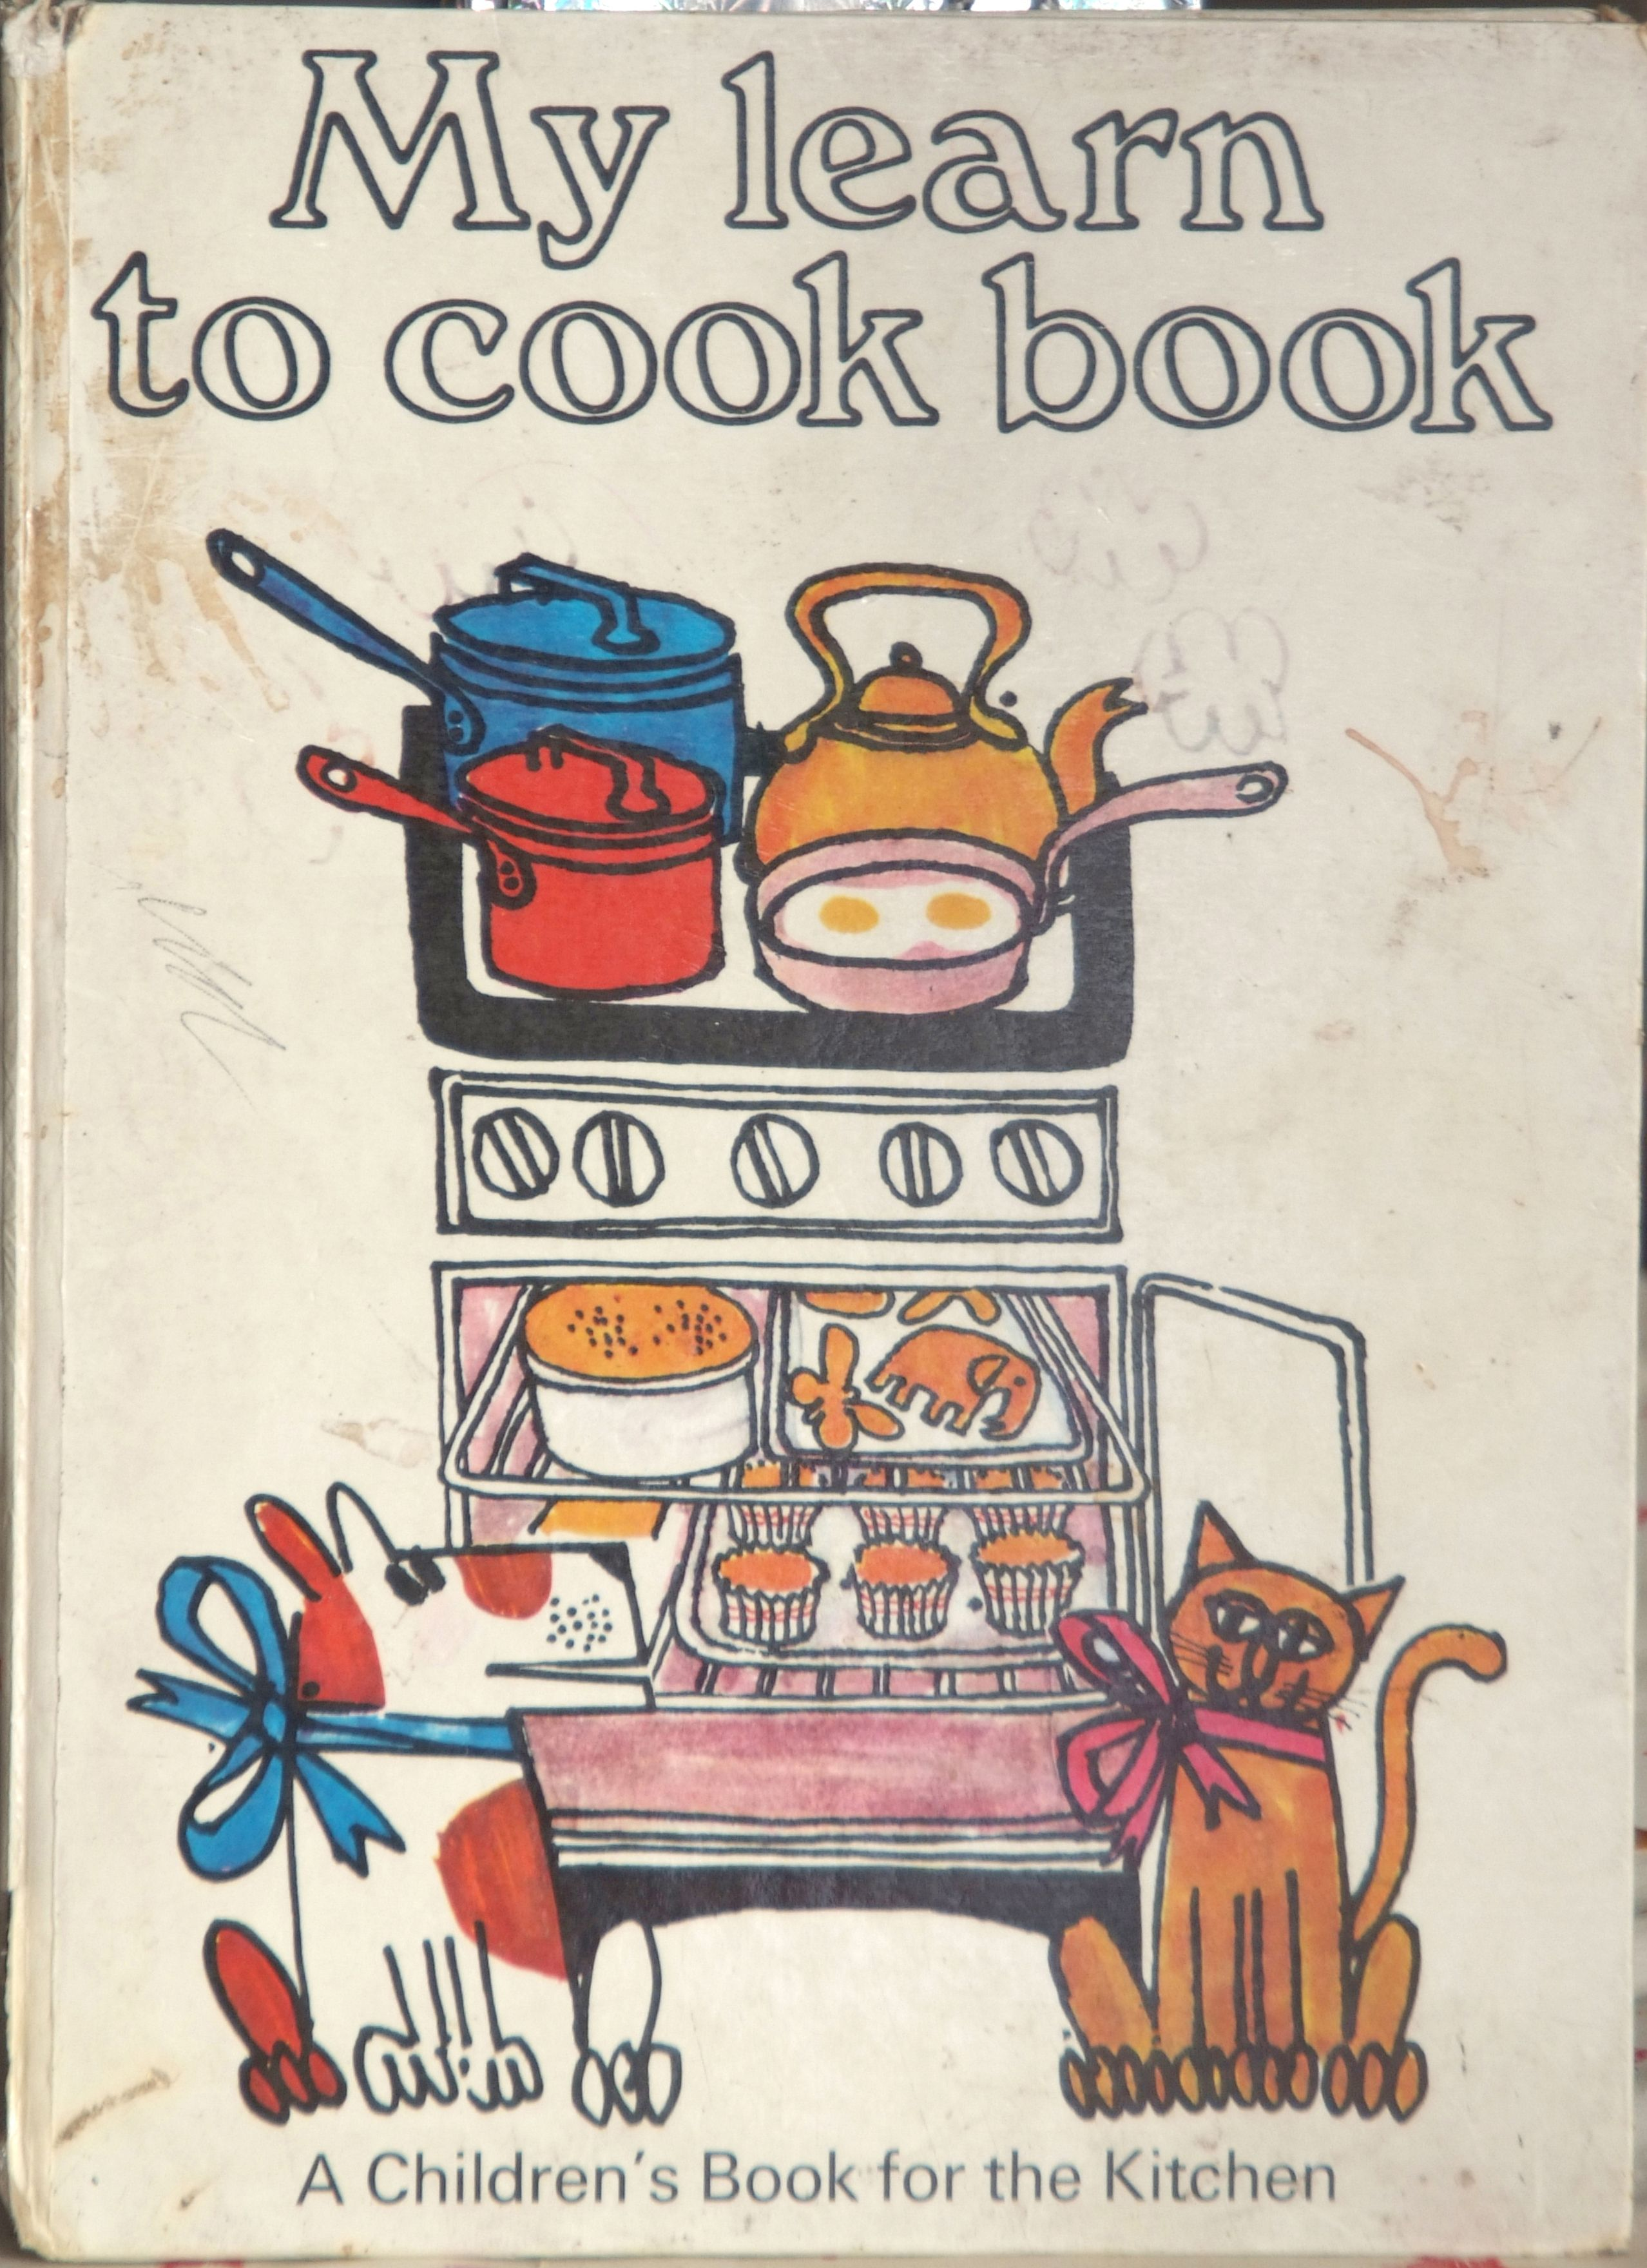 I had this book as a child! My learn to cook book by Ursula Sedgwick, illustrations by Martin Mayhew.